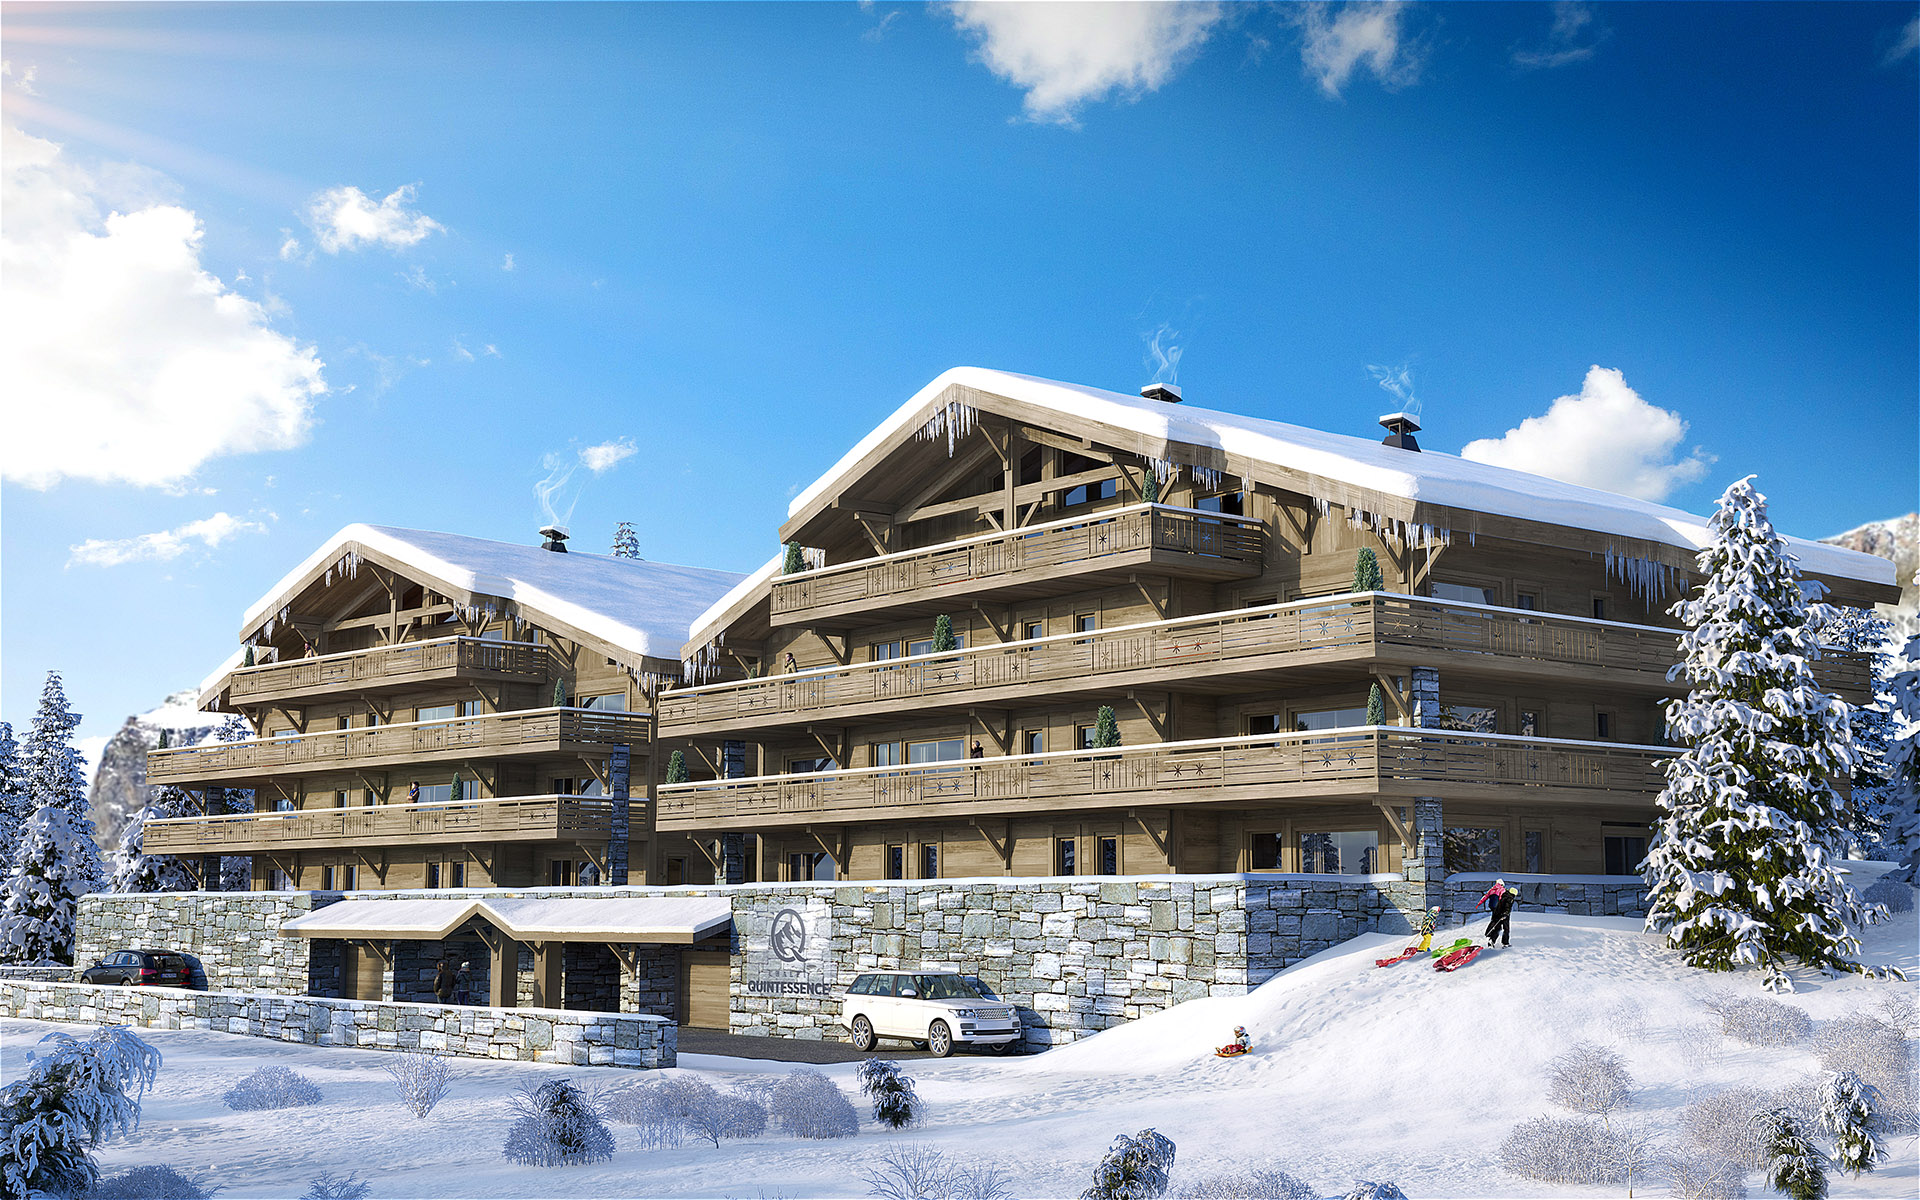 3D computer graphics of luxury collective chalets in the mountains